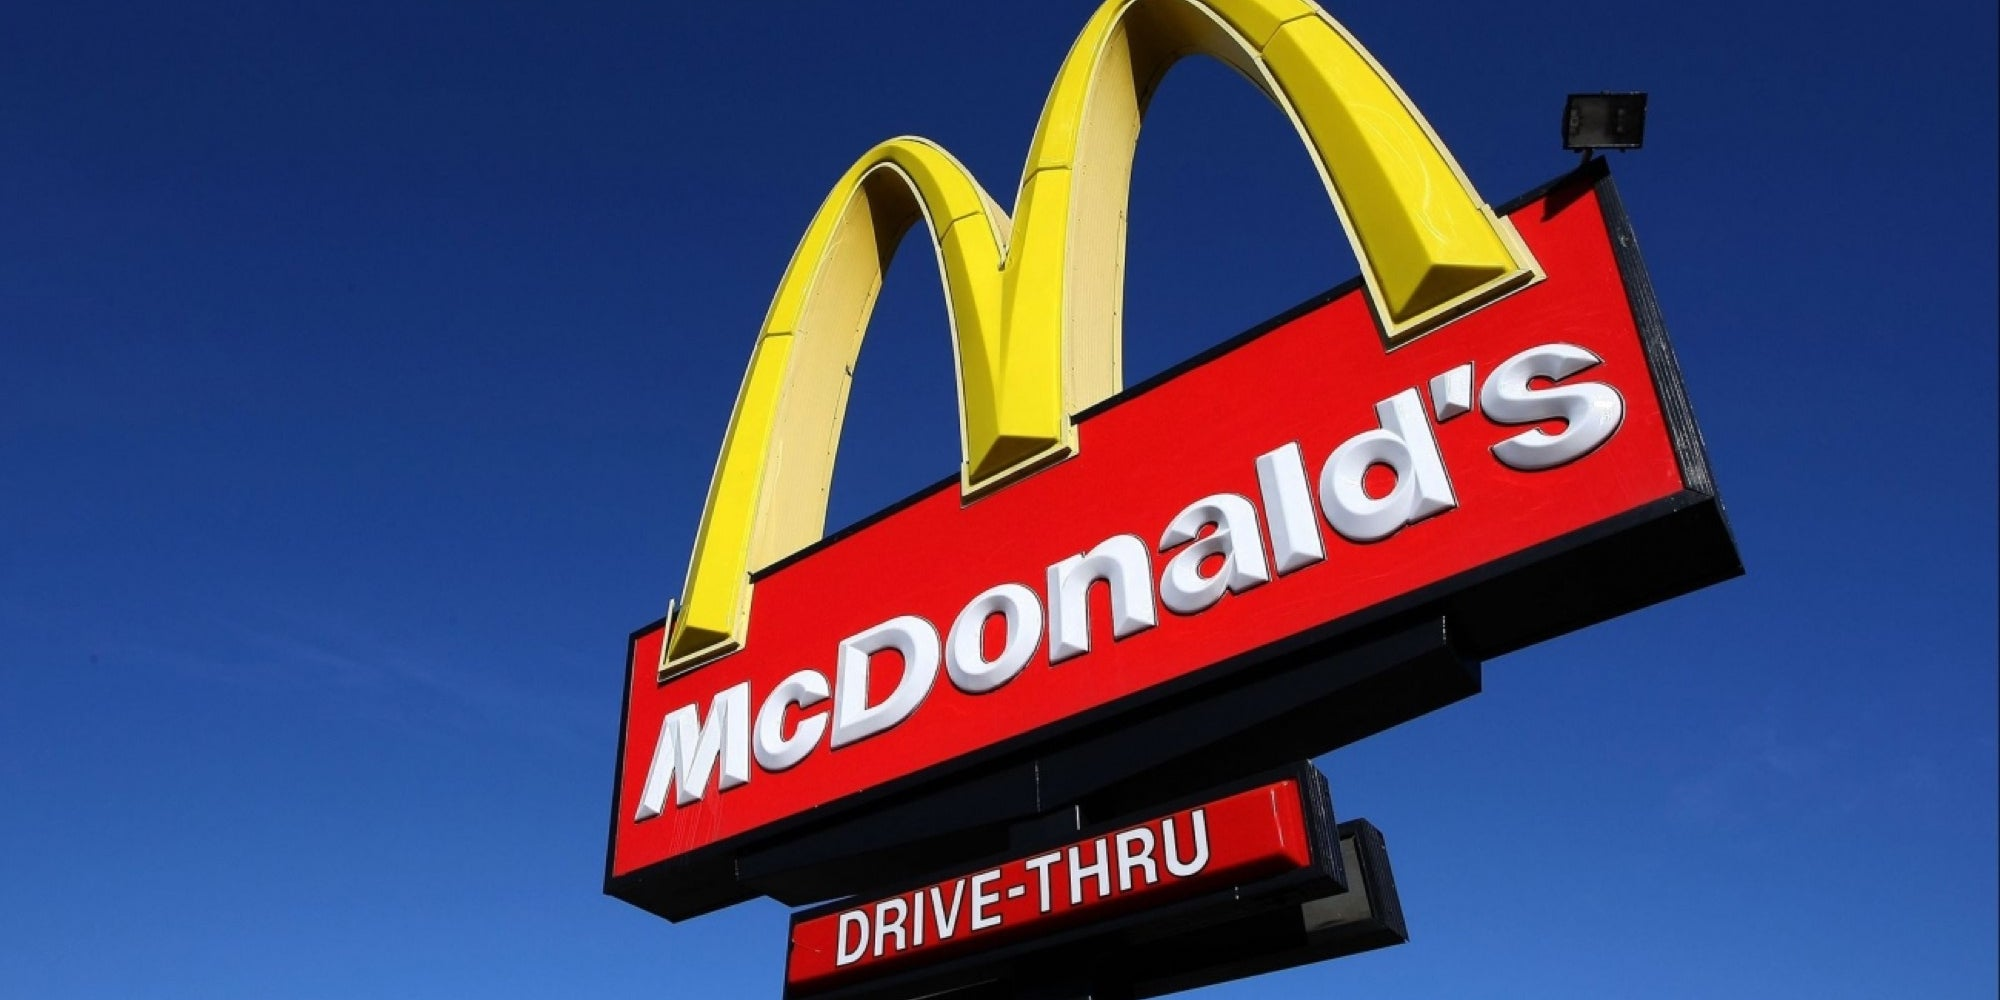 Just How Much Does It Cost to Own a Fast-Food Franchise?